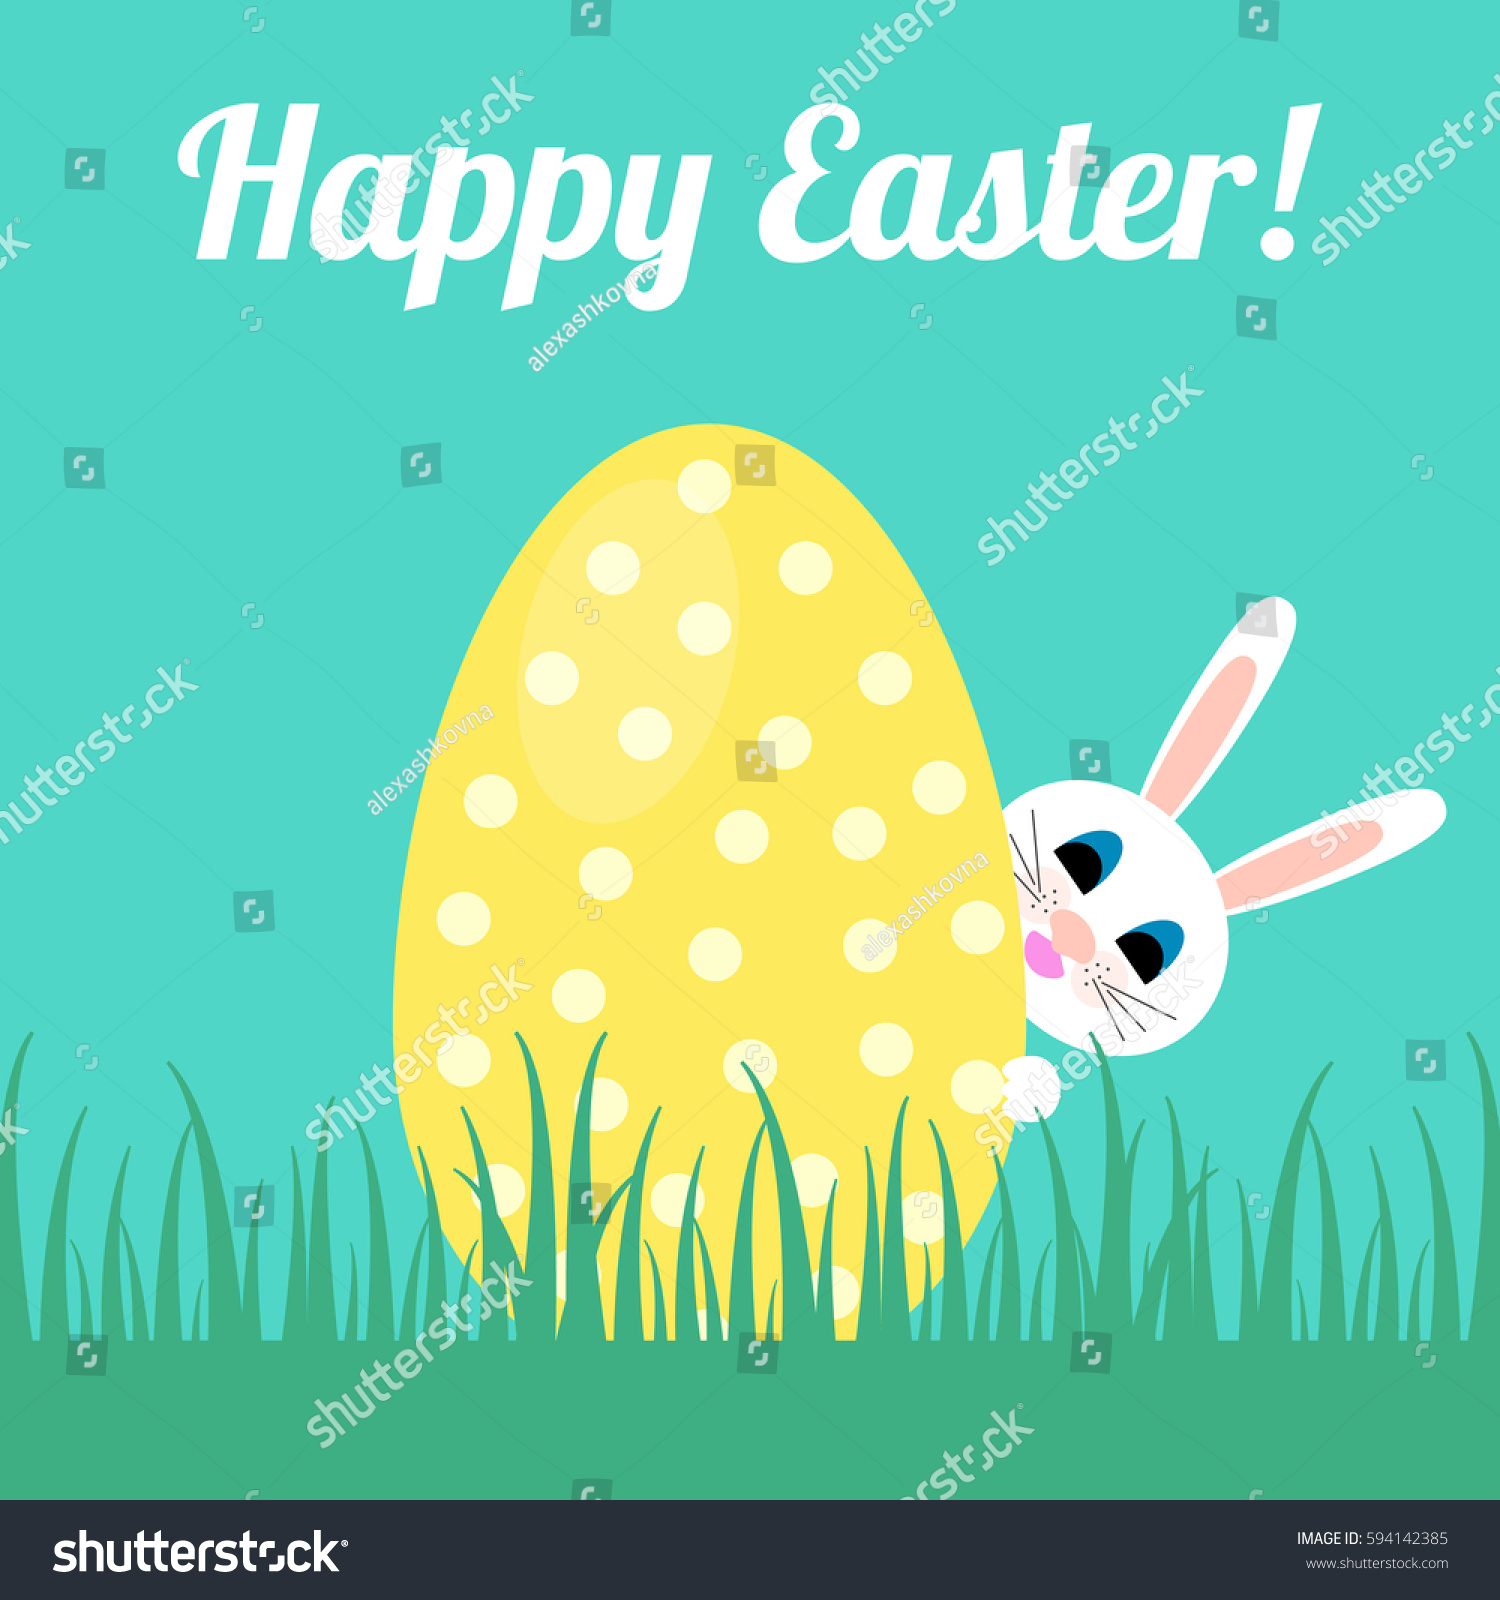 Happy easter greeting card easter bunny stock photo photo vector happy easter greeting card with the easter bunny hiding behind egg vector illustration m4hsunfo